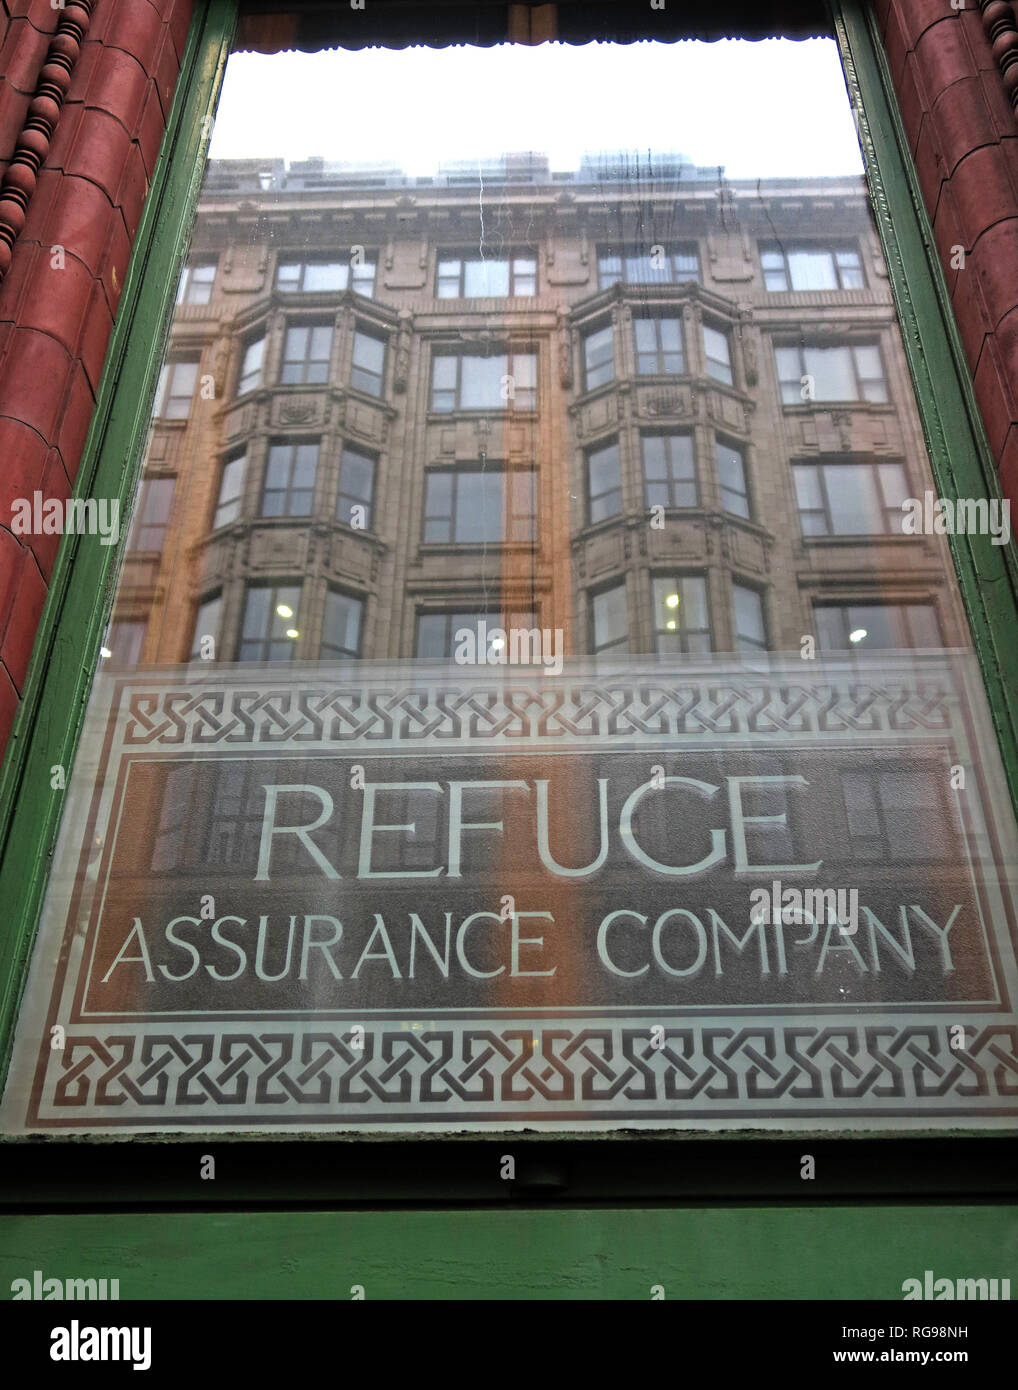 Window at Refuge assurance Company Head Office Building, Oxford Road, Manchester, North West England, UK, - Stock Image